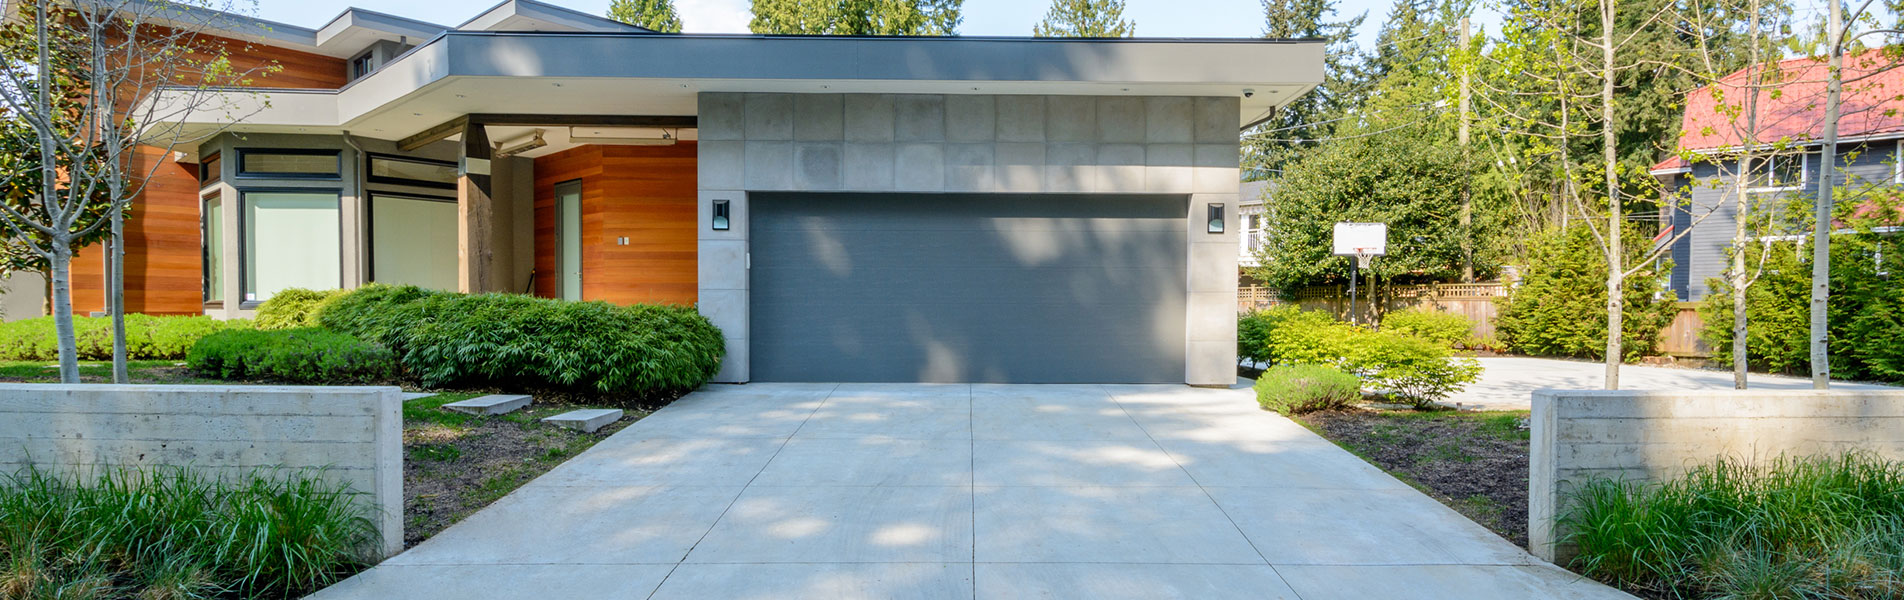 Quality Garage Door Service Suffern, NY 845-809-1073